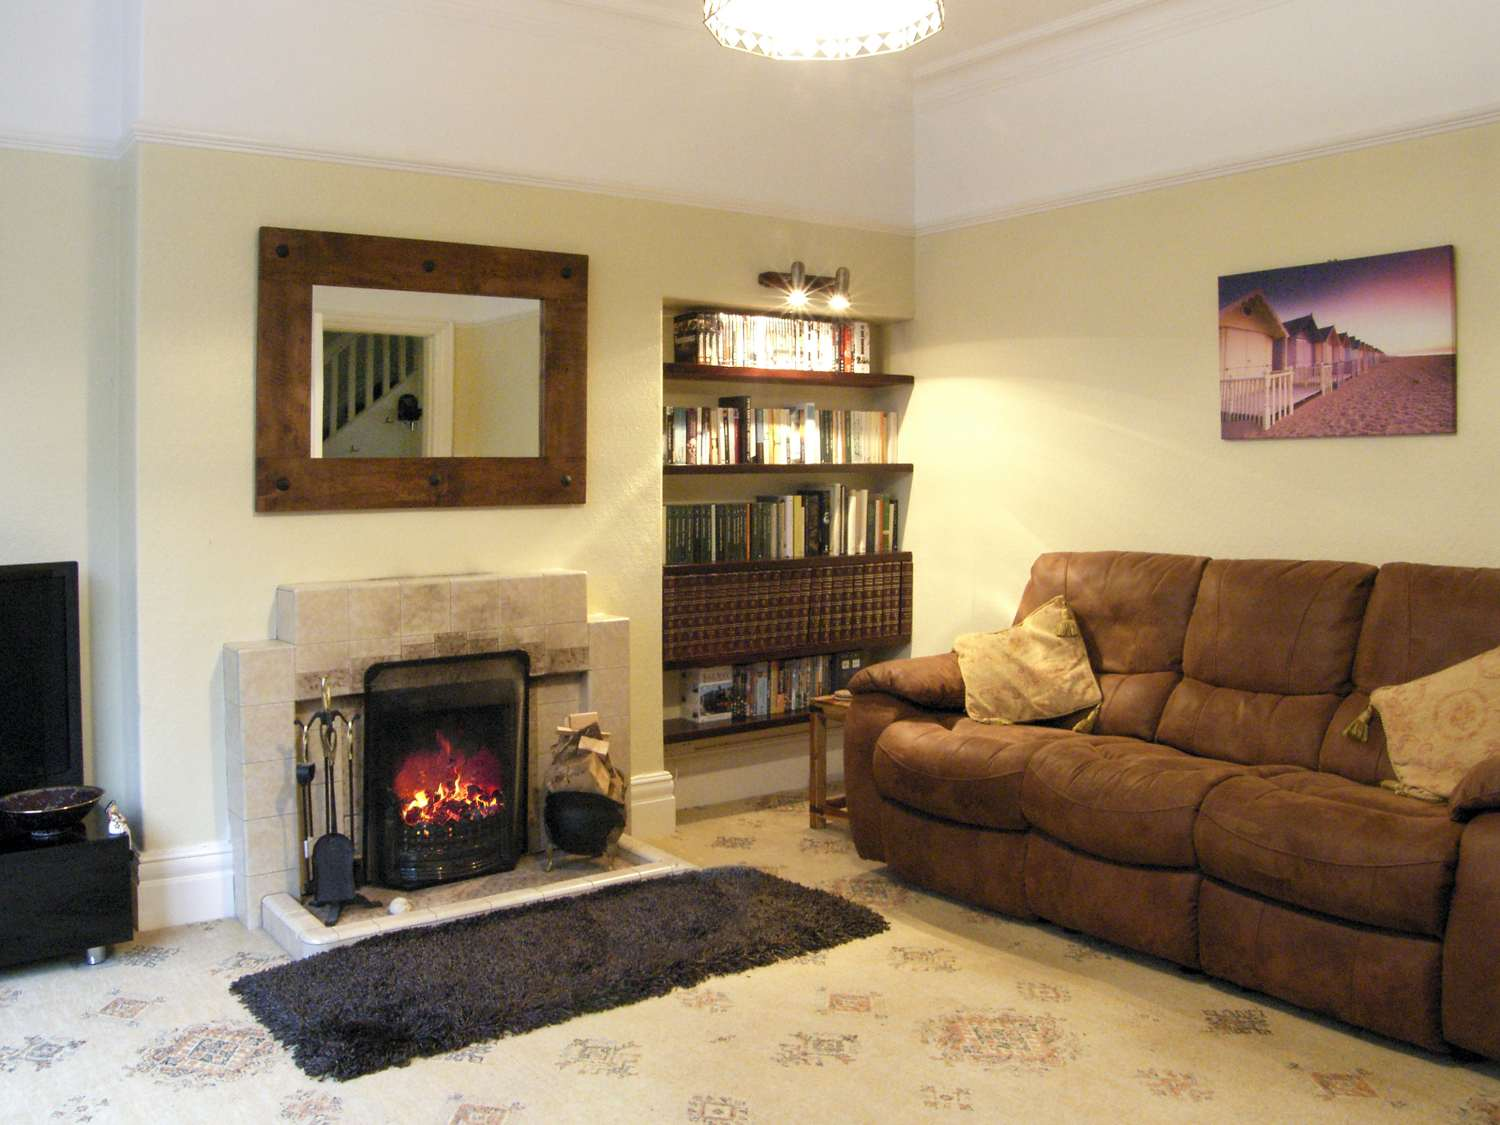 Living room - Self catering accommodation - Llandudno